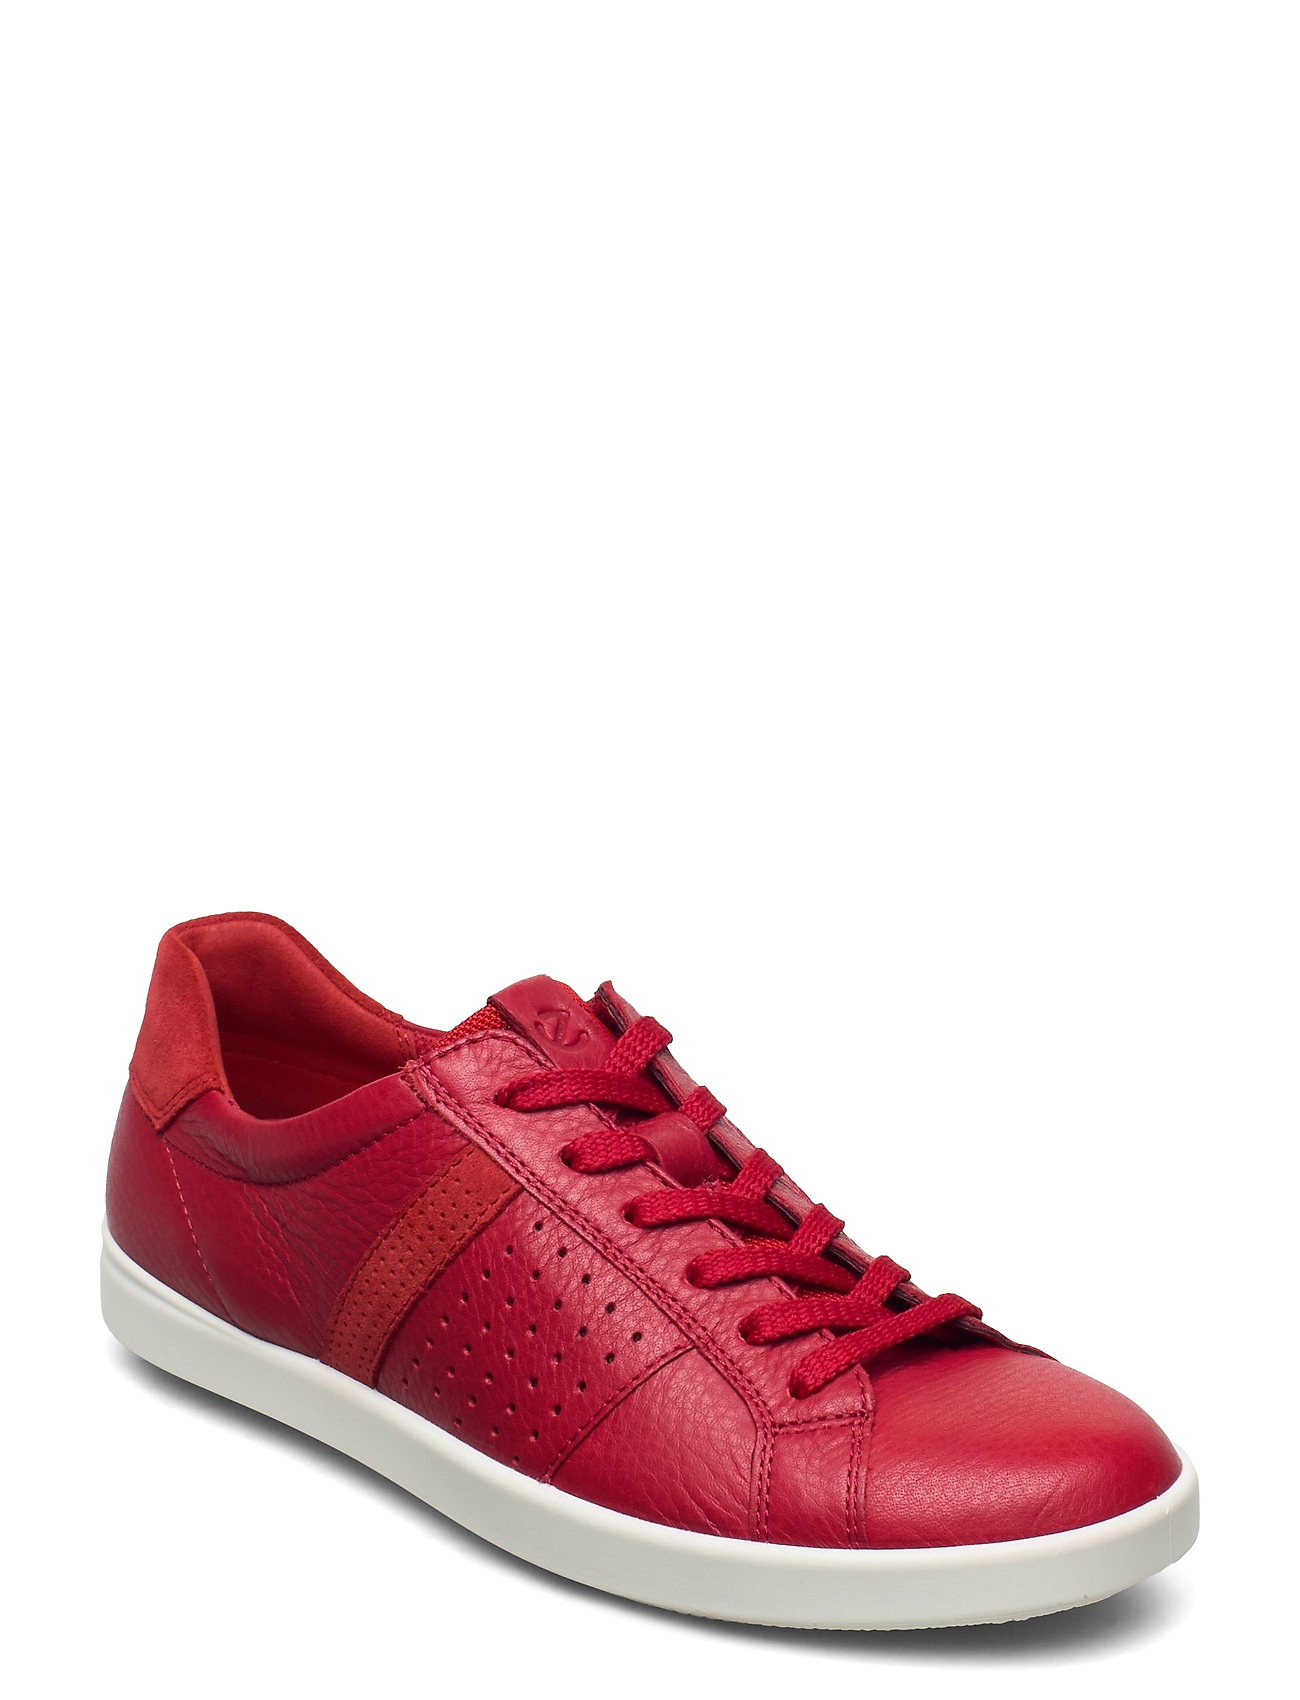 Image of Leisure Low-top Sneakers Rød ECCO (3486739357)